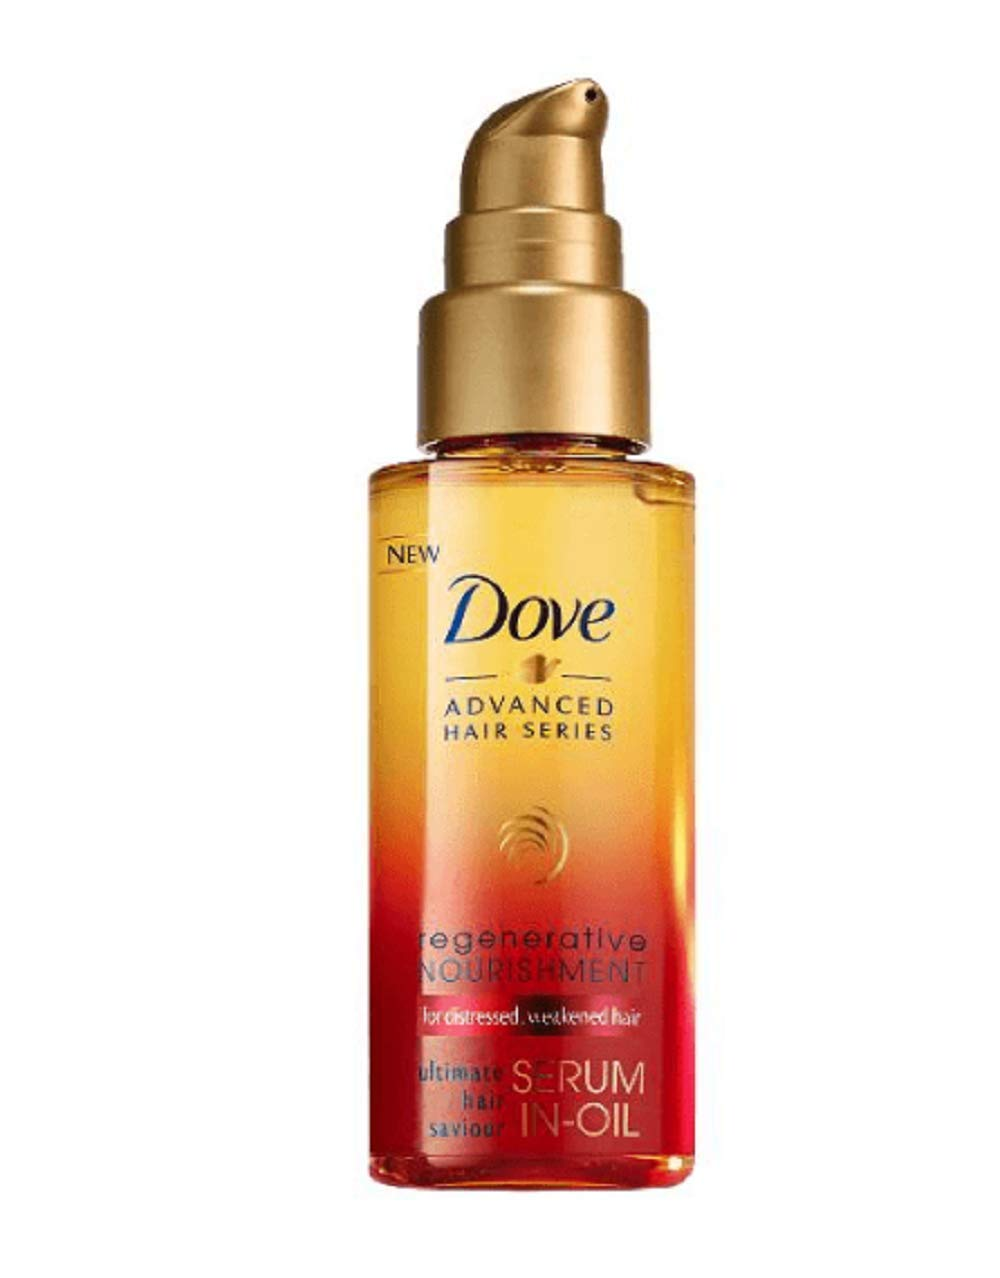 Dove Advanced Hair Series Quench Absolute Supreme Creme Serum 3.30 oz (Pack of 2) by Dove